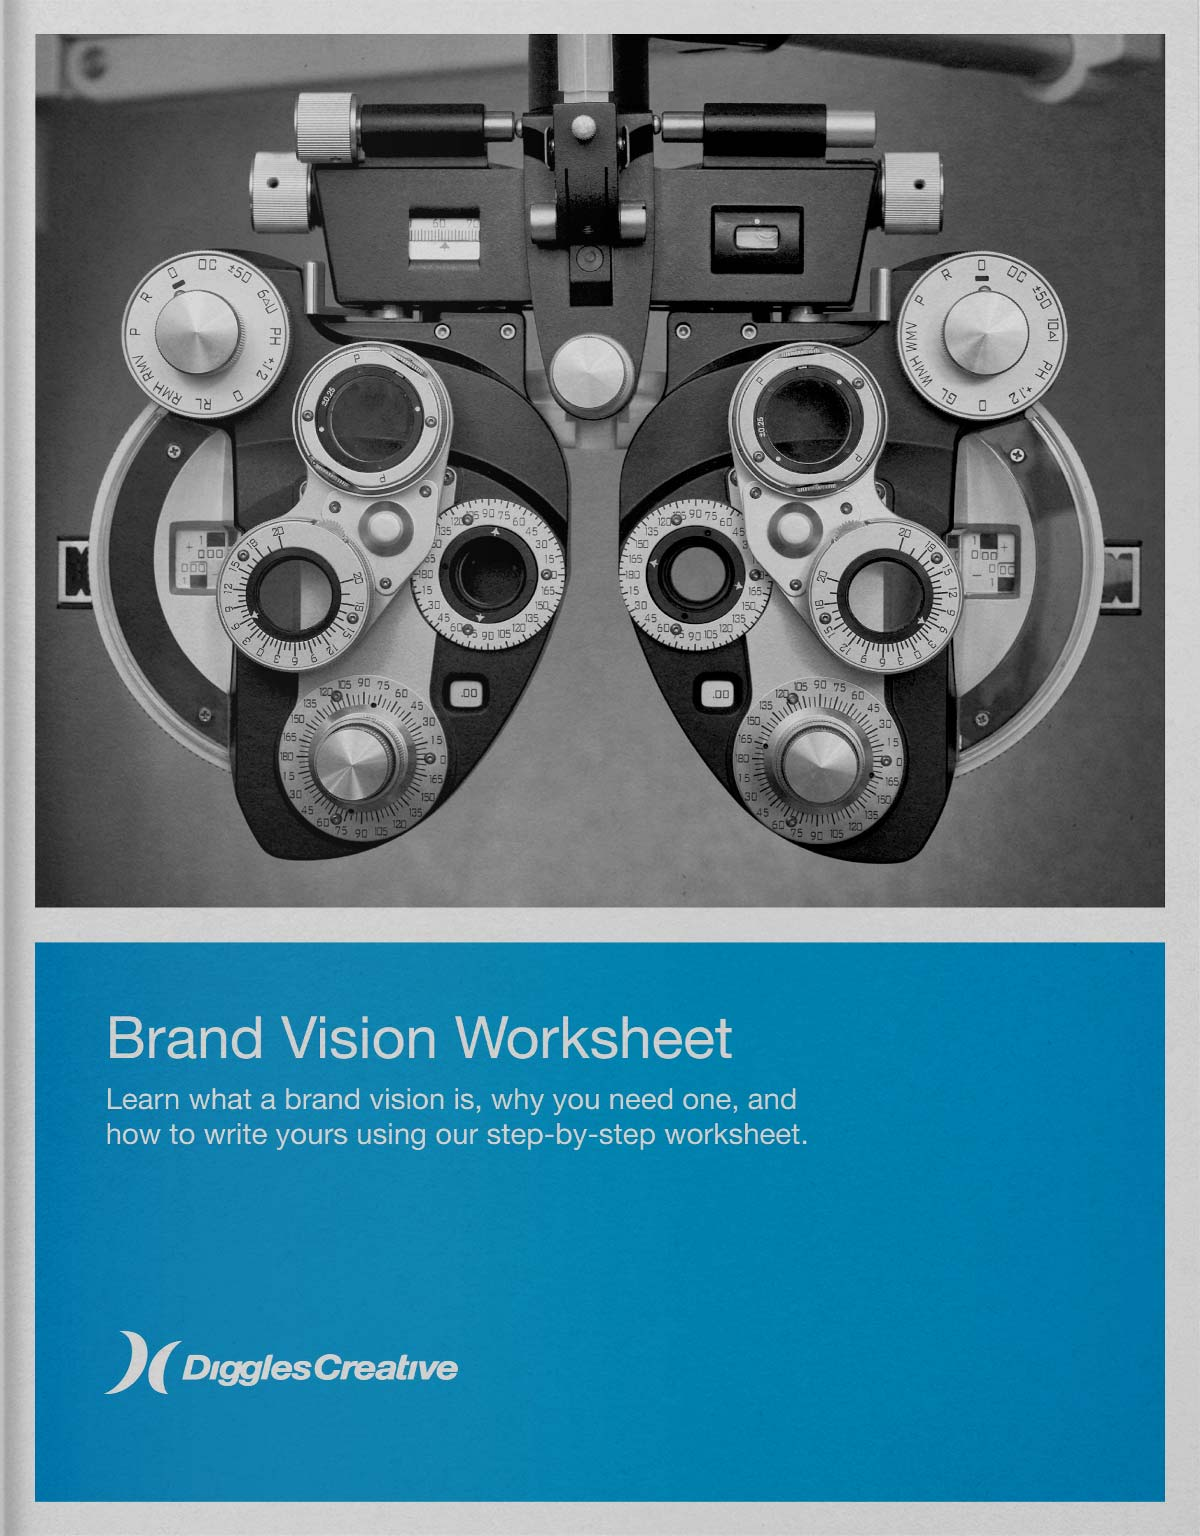 Worksheet - Brand Vision